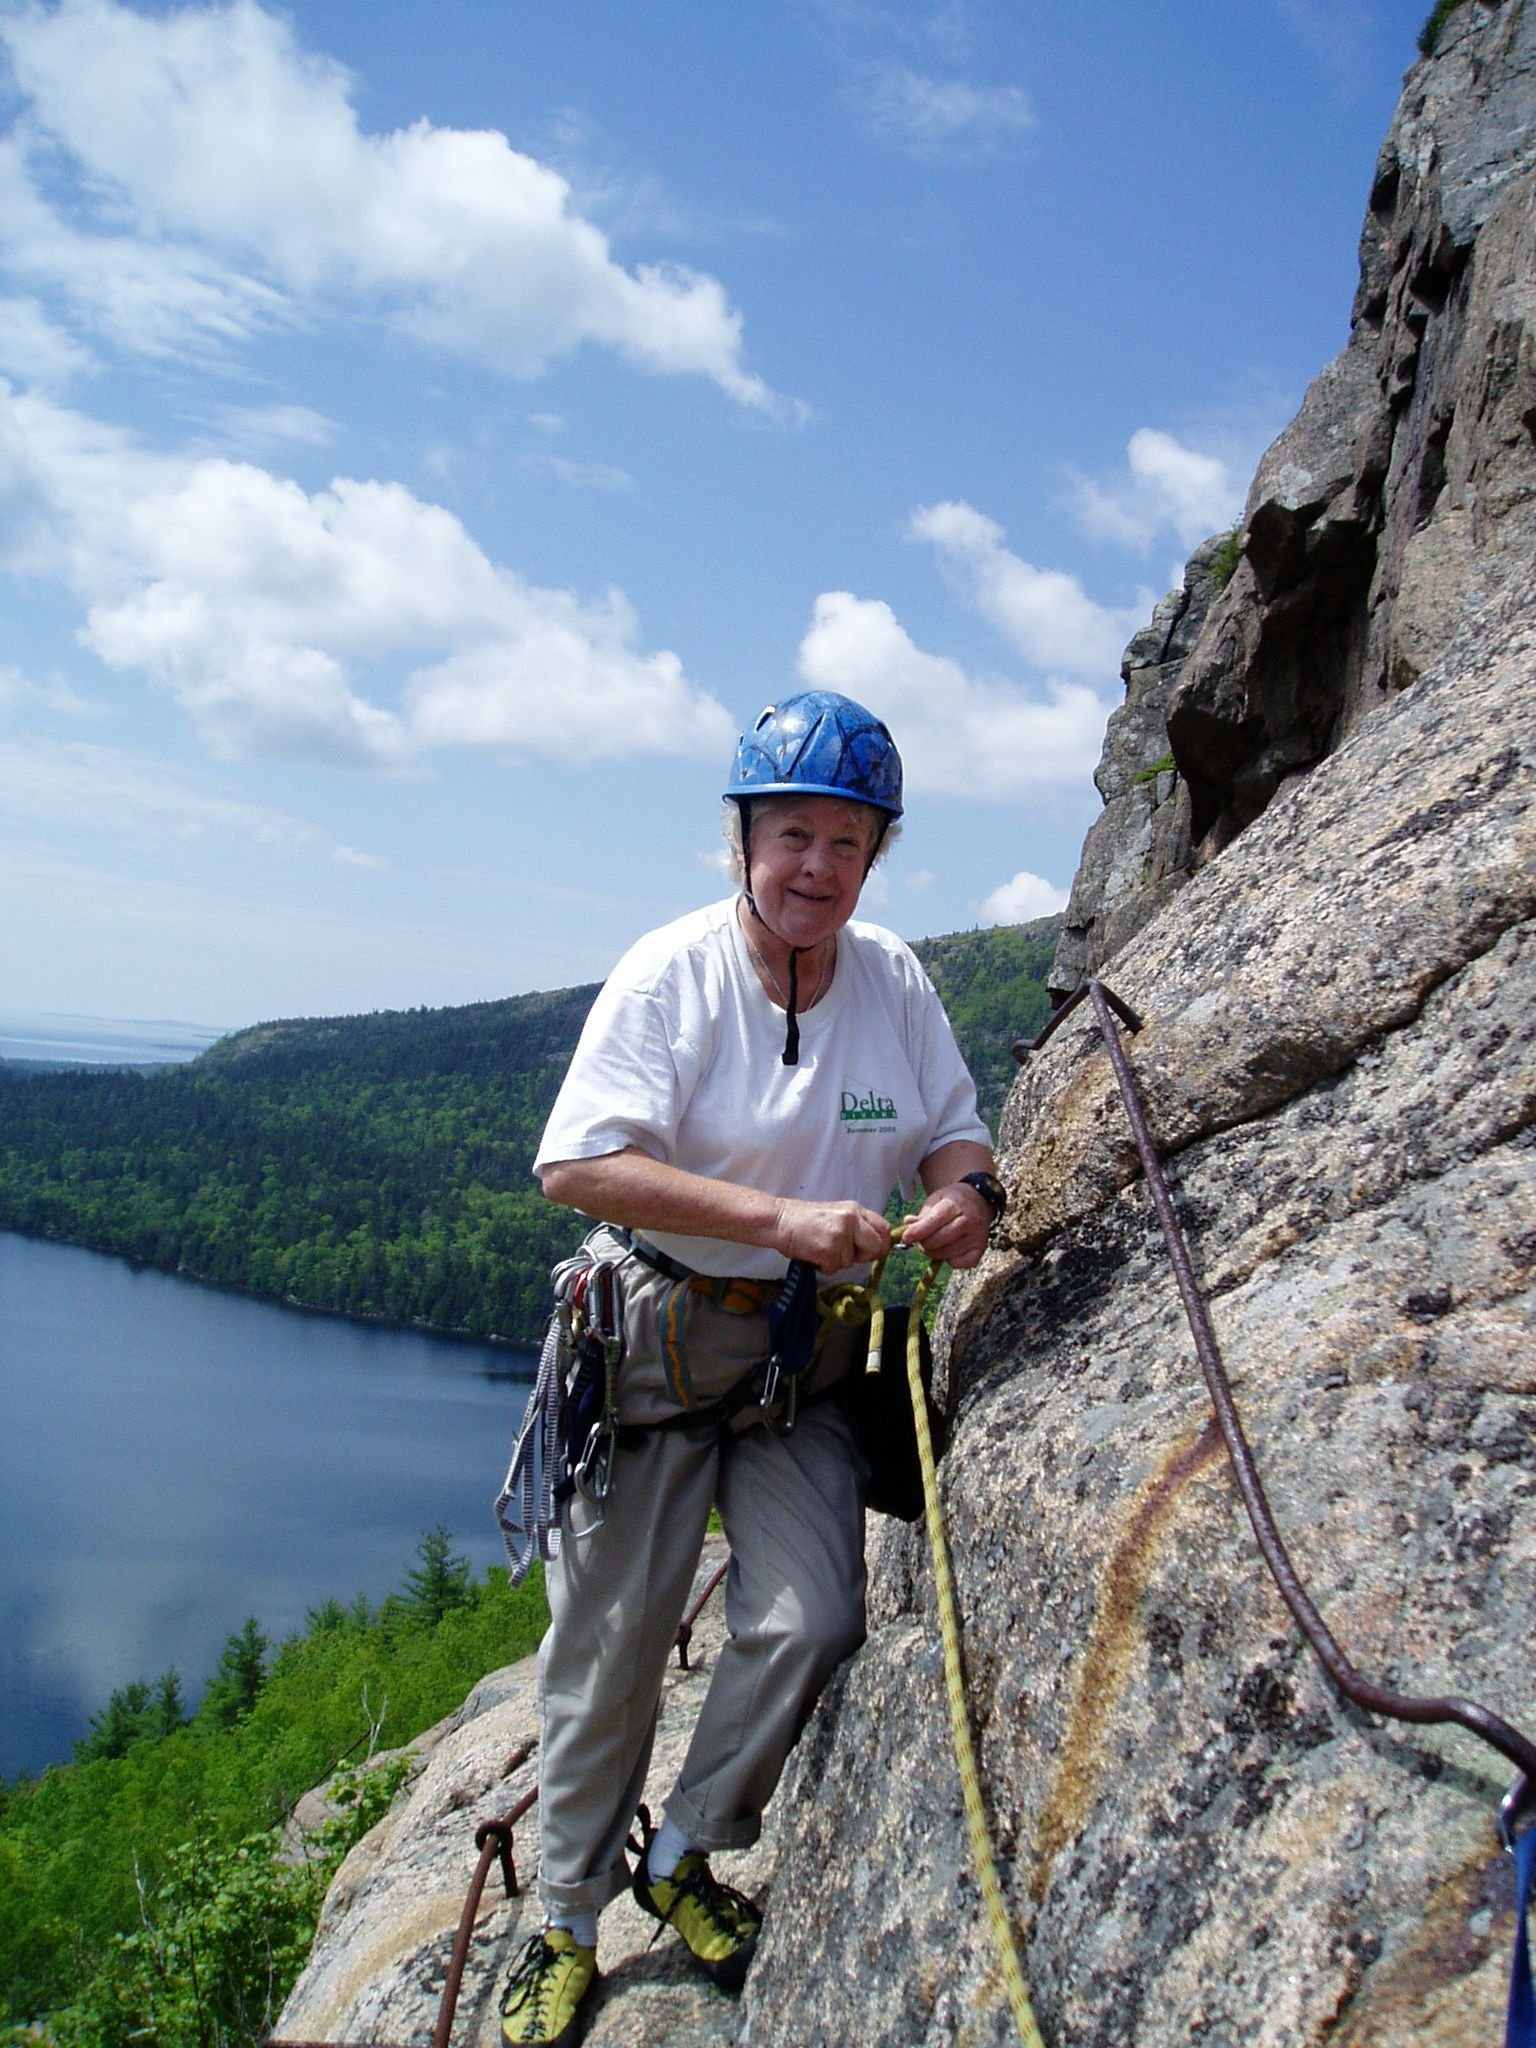 Another great day on the Bubbles. Climbing in Acadia National Park with Acadia Mountain Guides Climbing School.